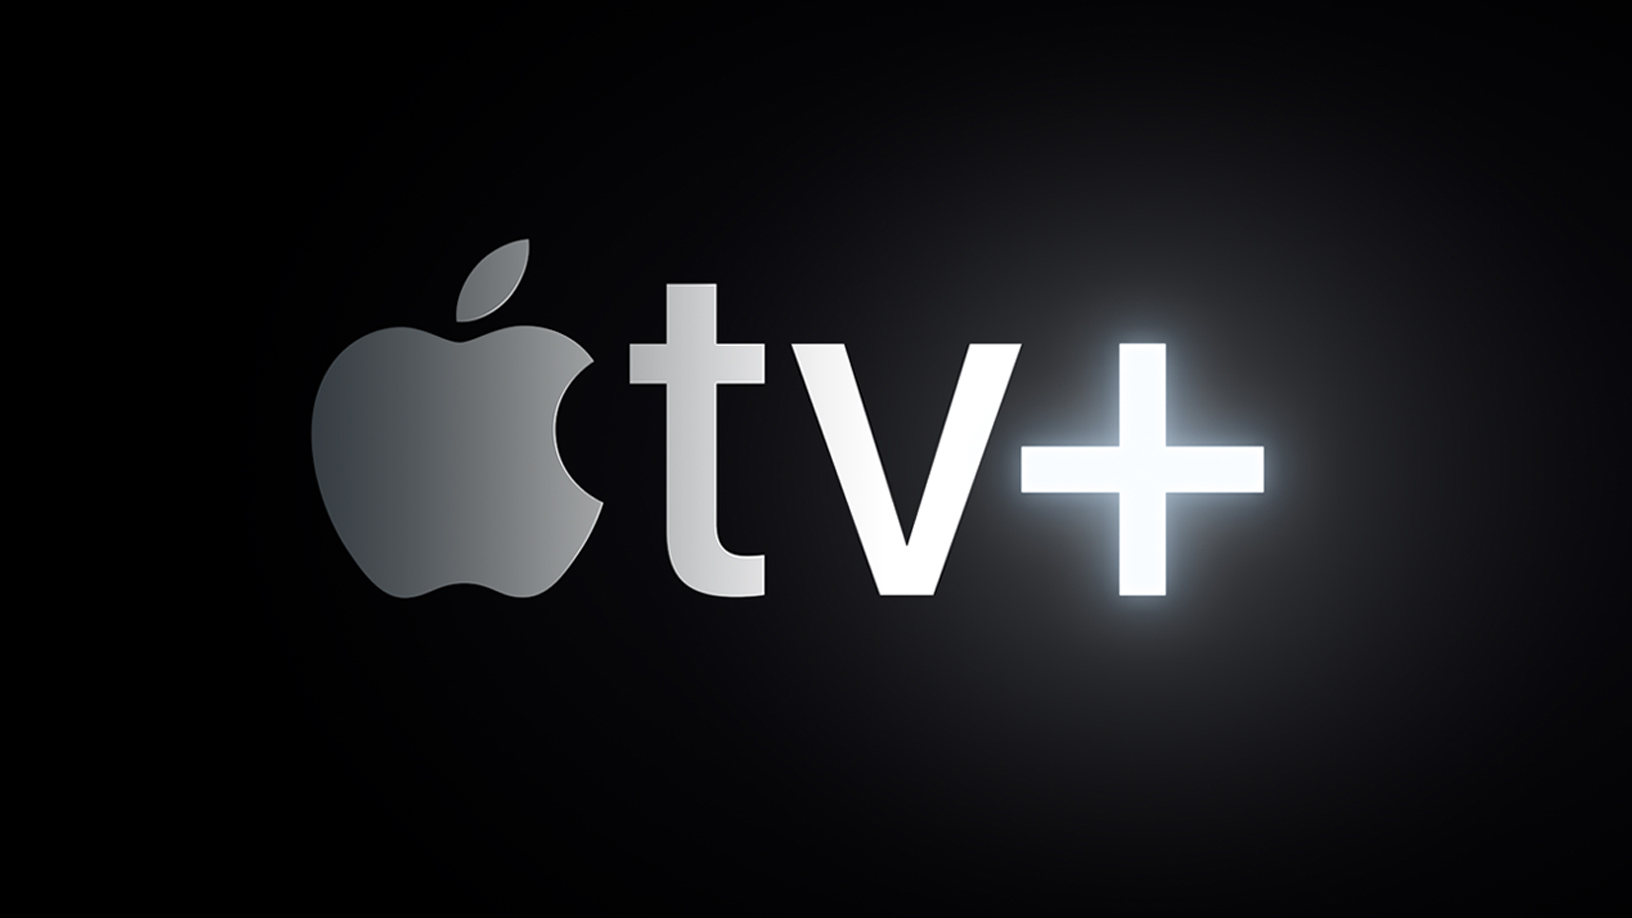 Your guide to Apple TV Plus shows, reviews, news, and trailers